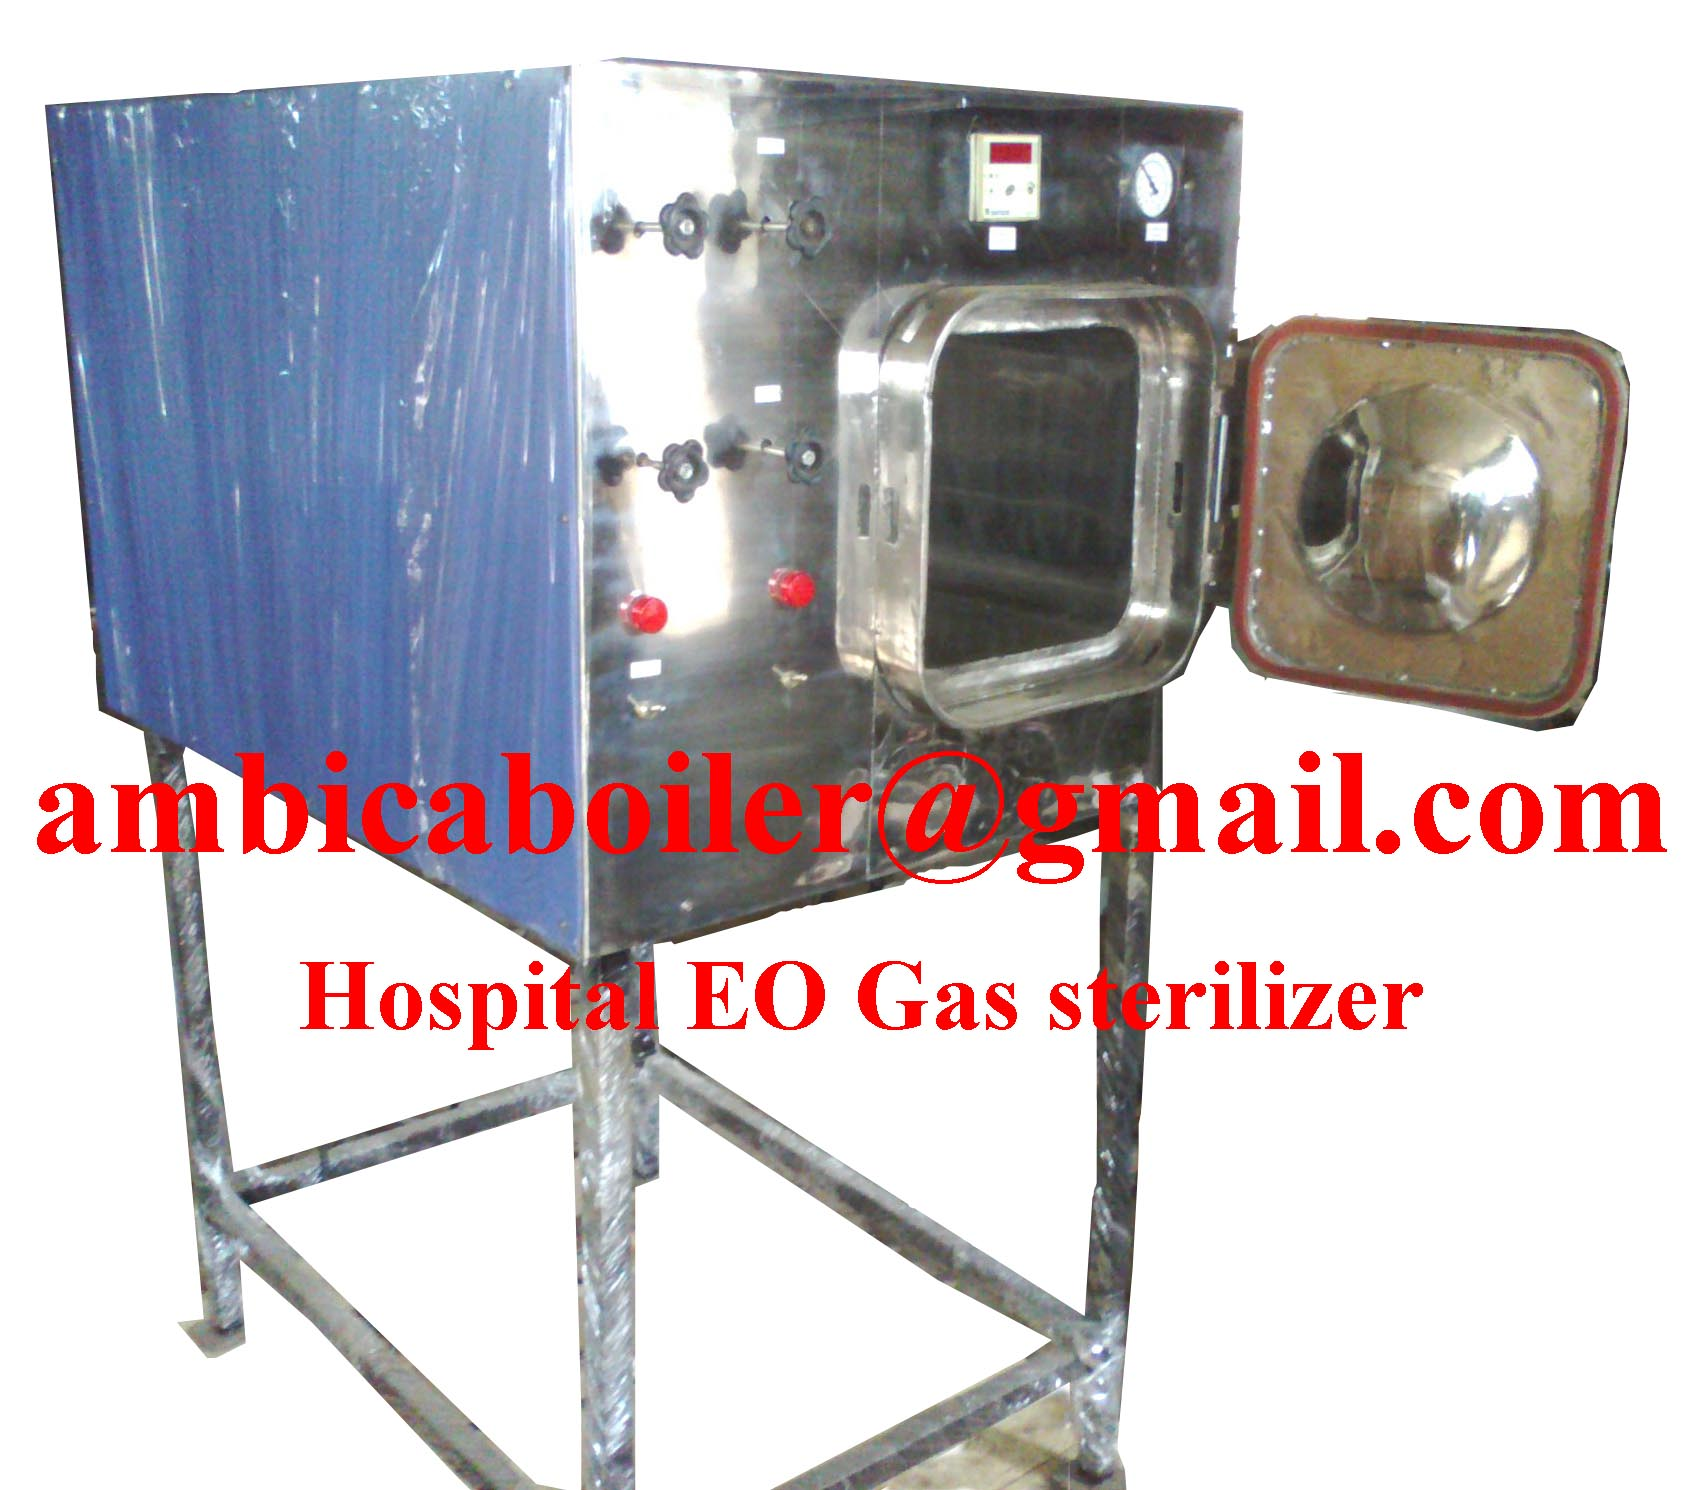 Hospital eto gas sterilizer